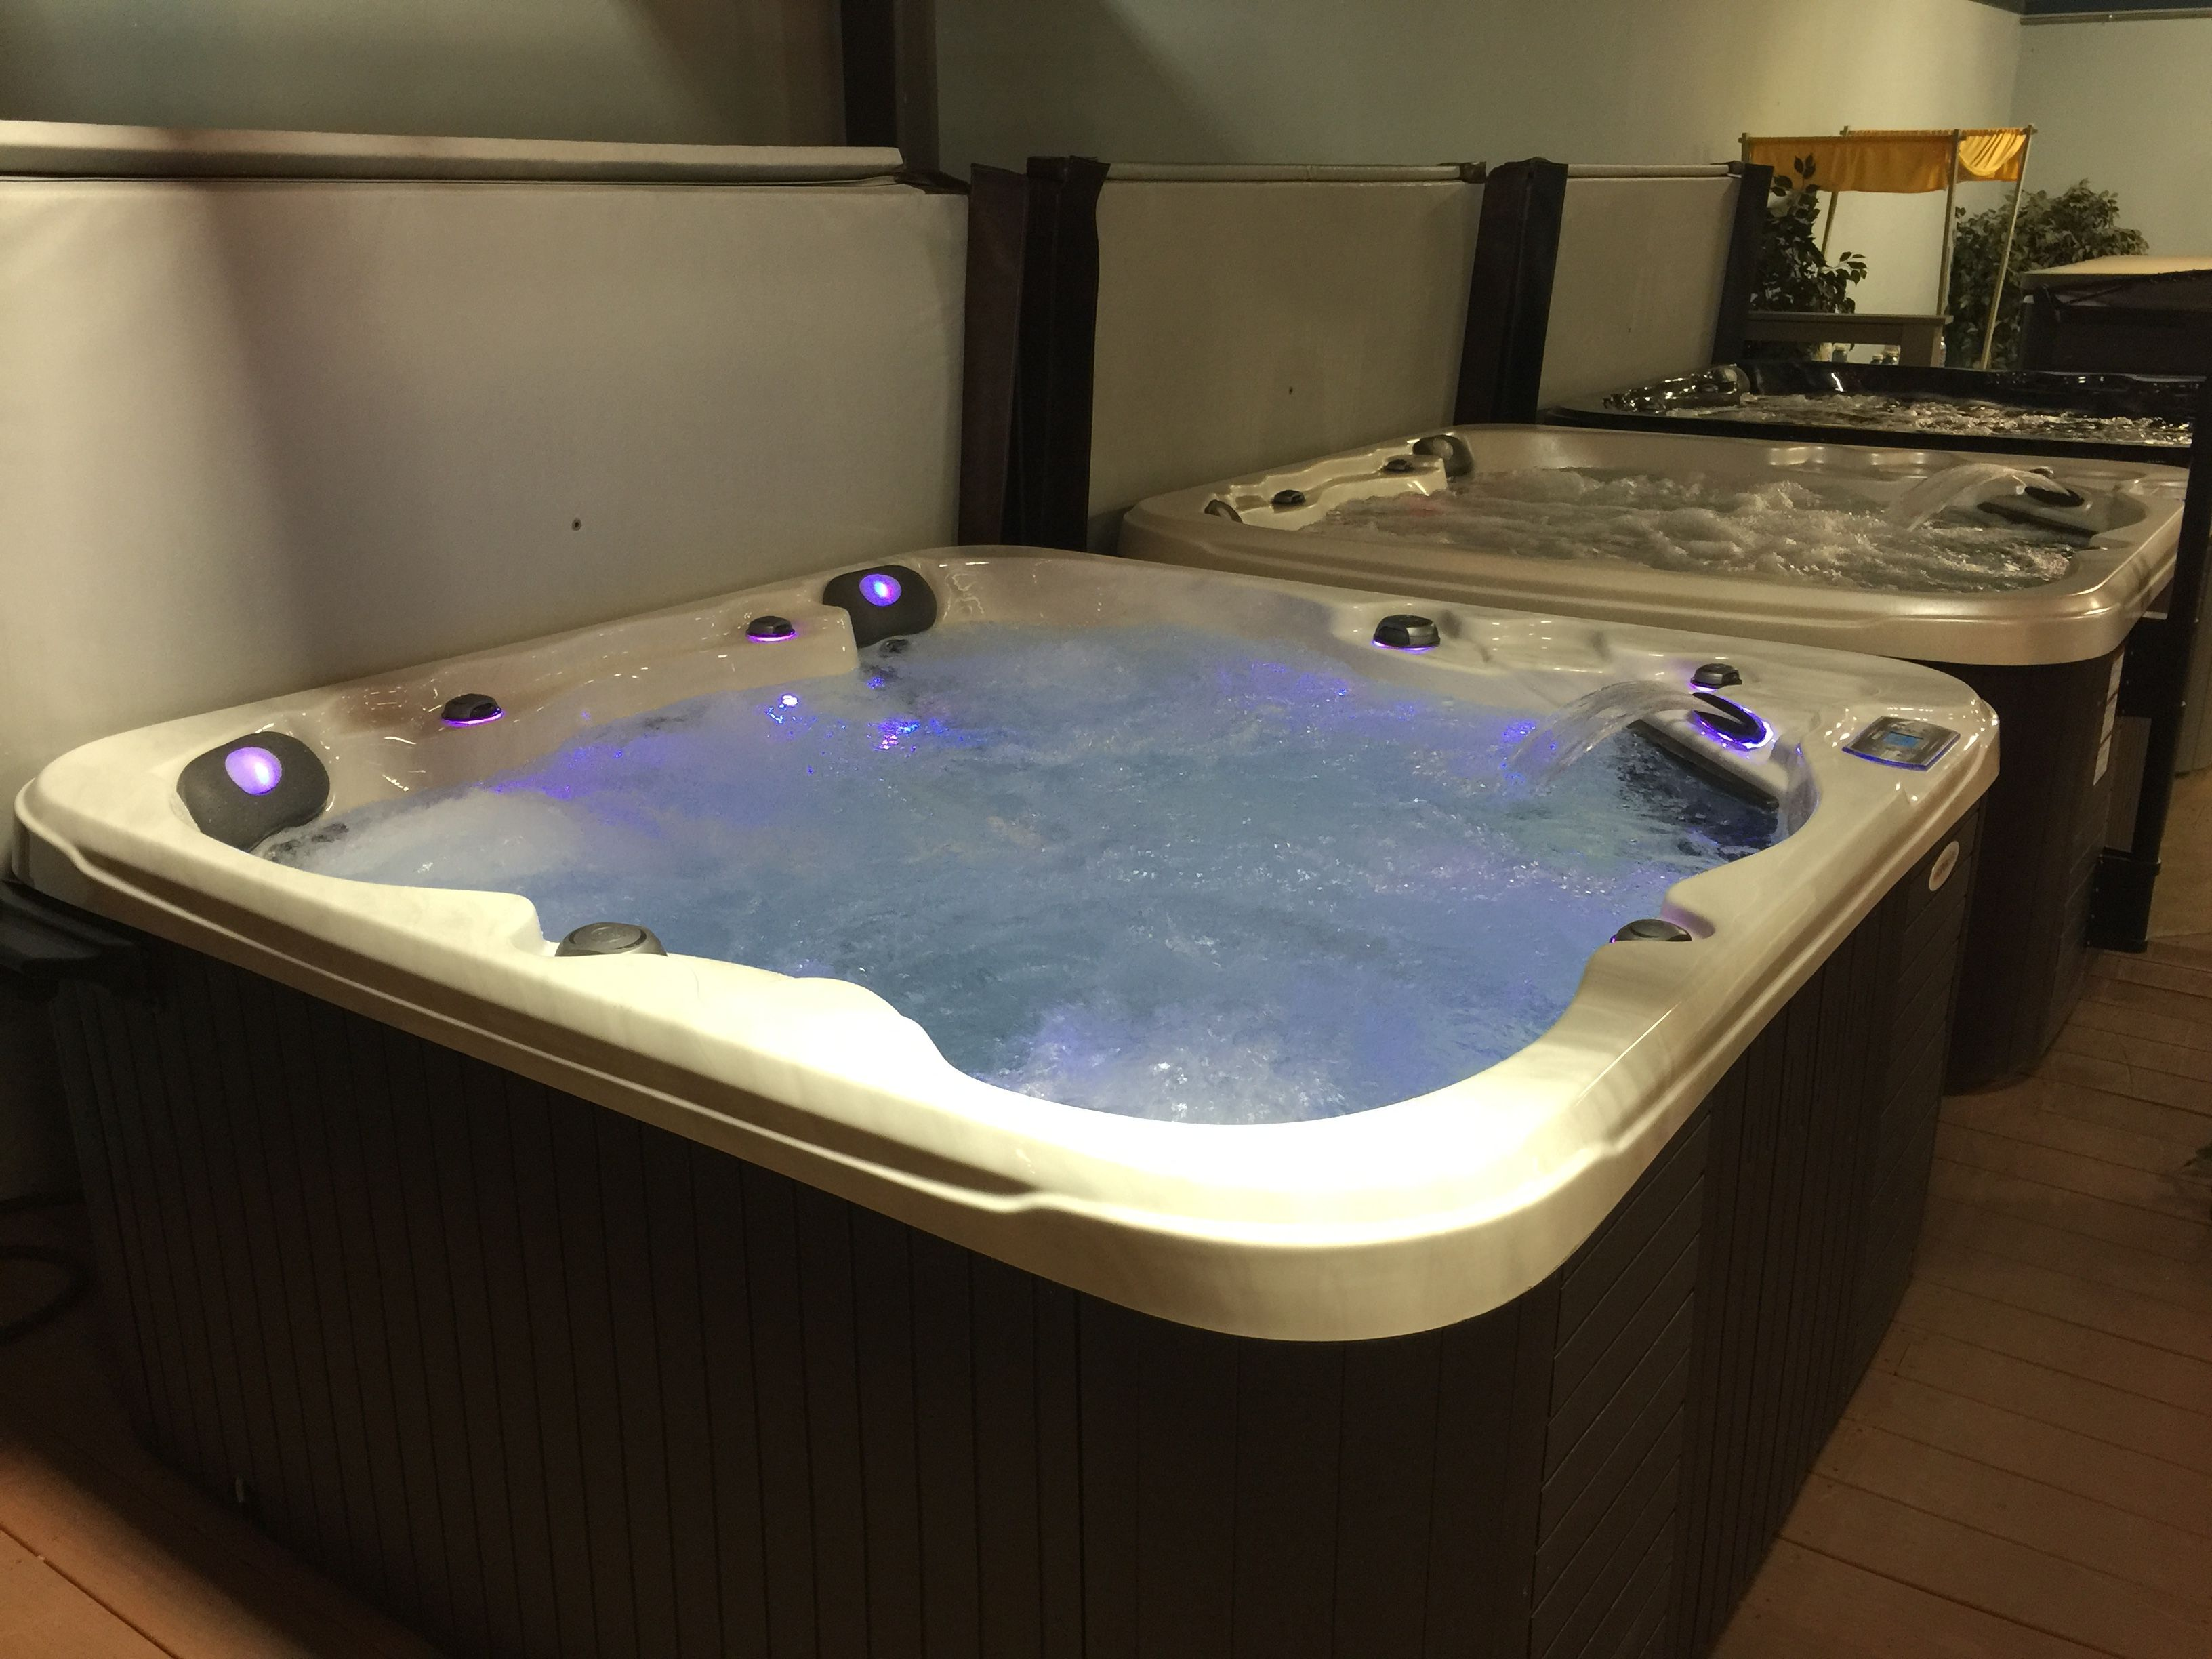 All 3 classes of El Dorado hot tubs built by Aspen Spas in St. Louis ...